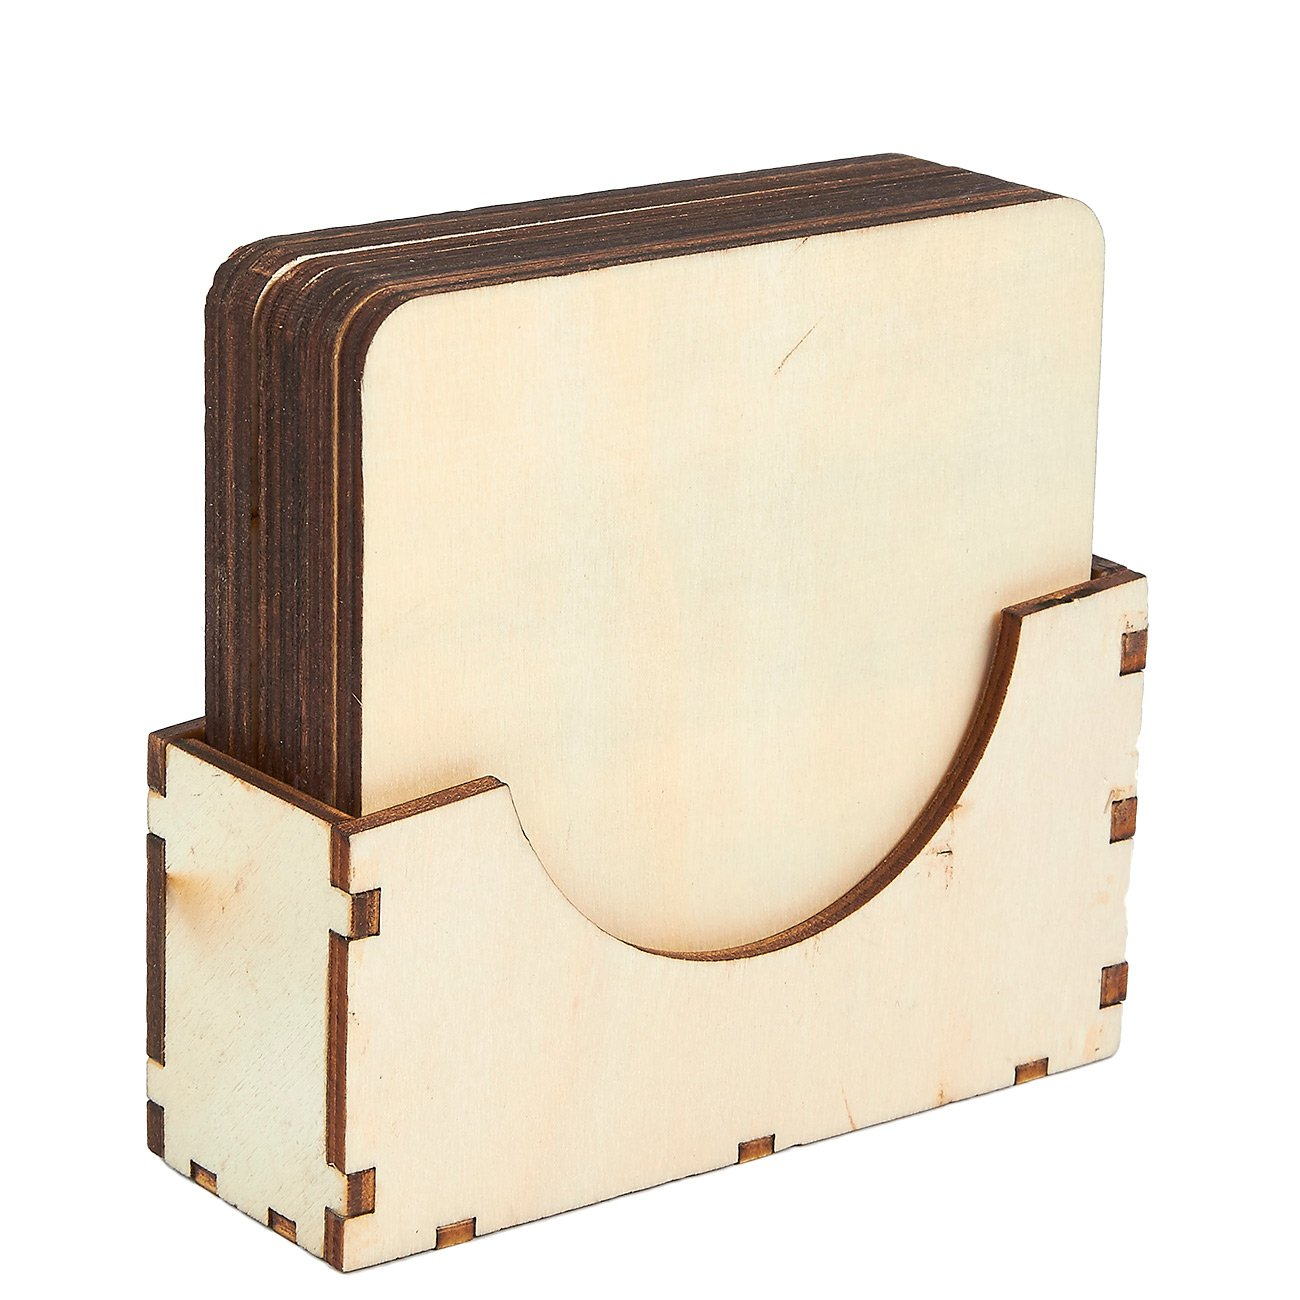 Wood Coasters - 6-Pack Square Wooden Drink Coasters with Holder, Unfinished Wood Cup Coasters for Home Kitchen, Office Desk, 3.875 x 3.875 x 0.188 Inches by Juvale (Image #4)